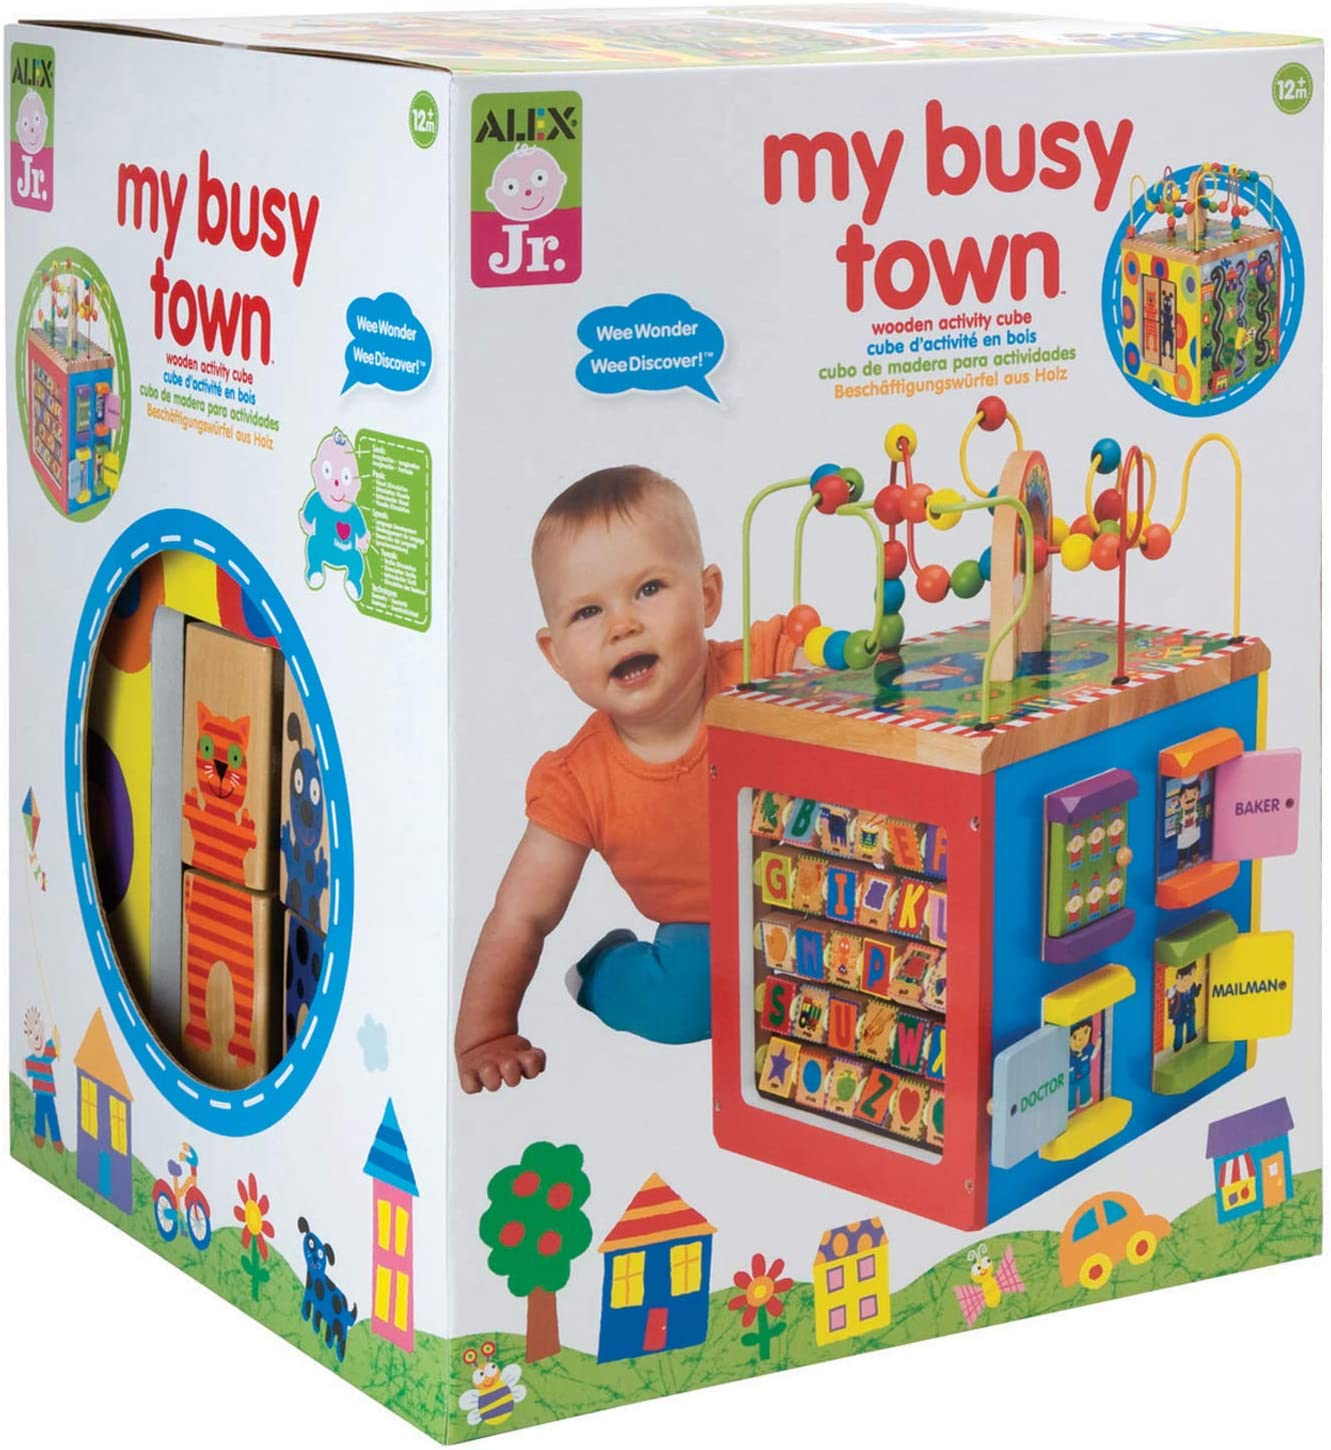 Top 10 Best Activity Cubes (2020 Reviews & Buying Guide) 4